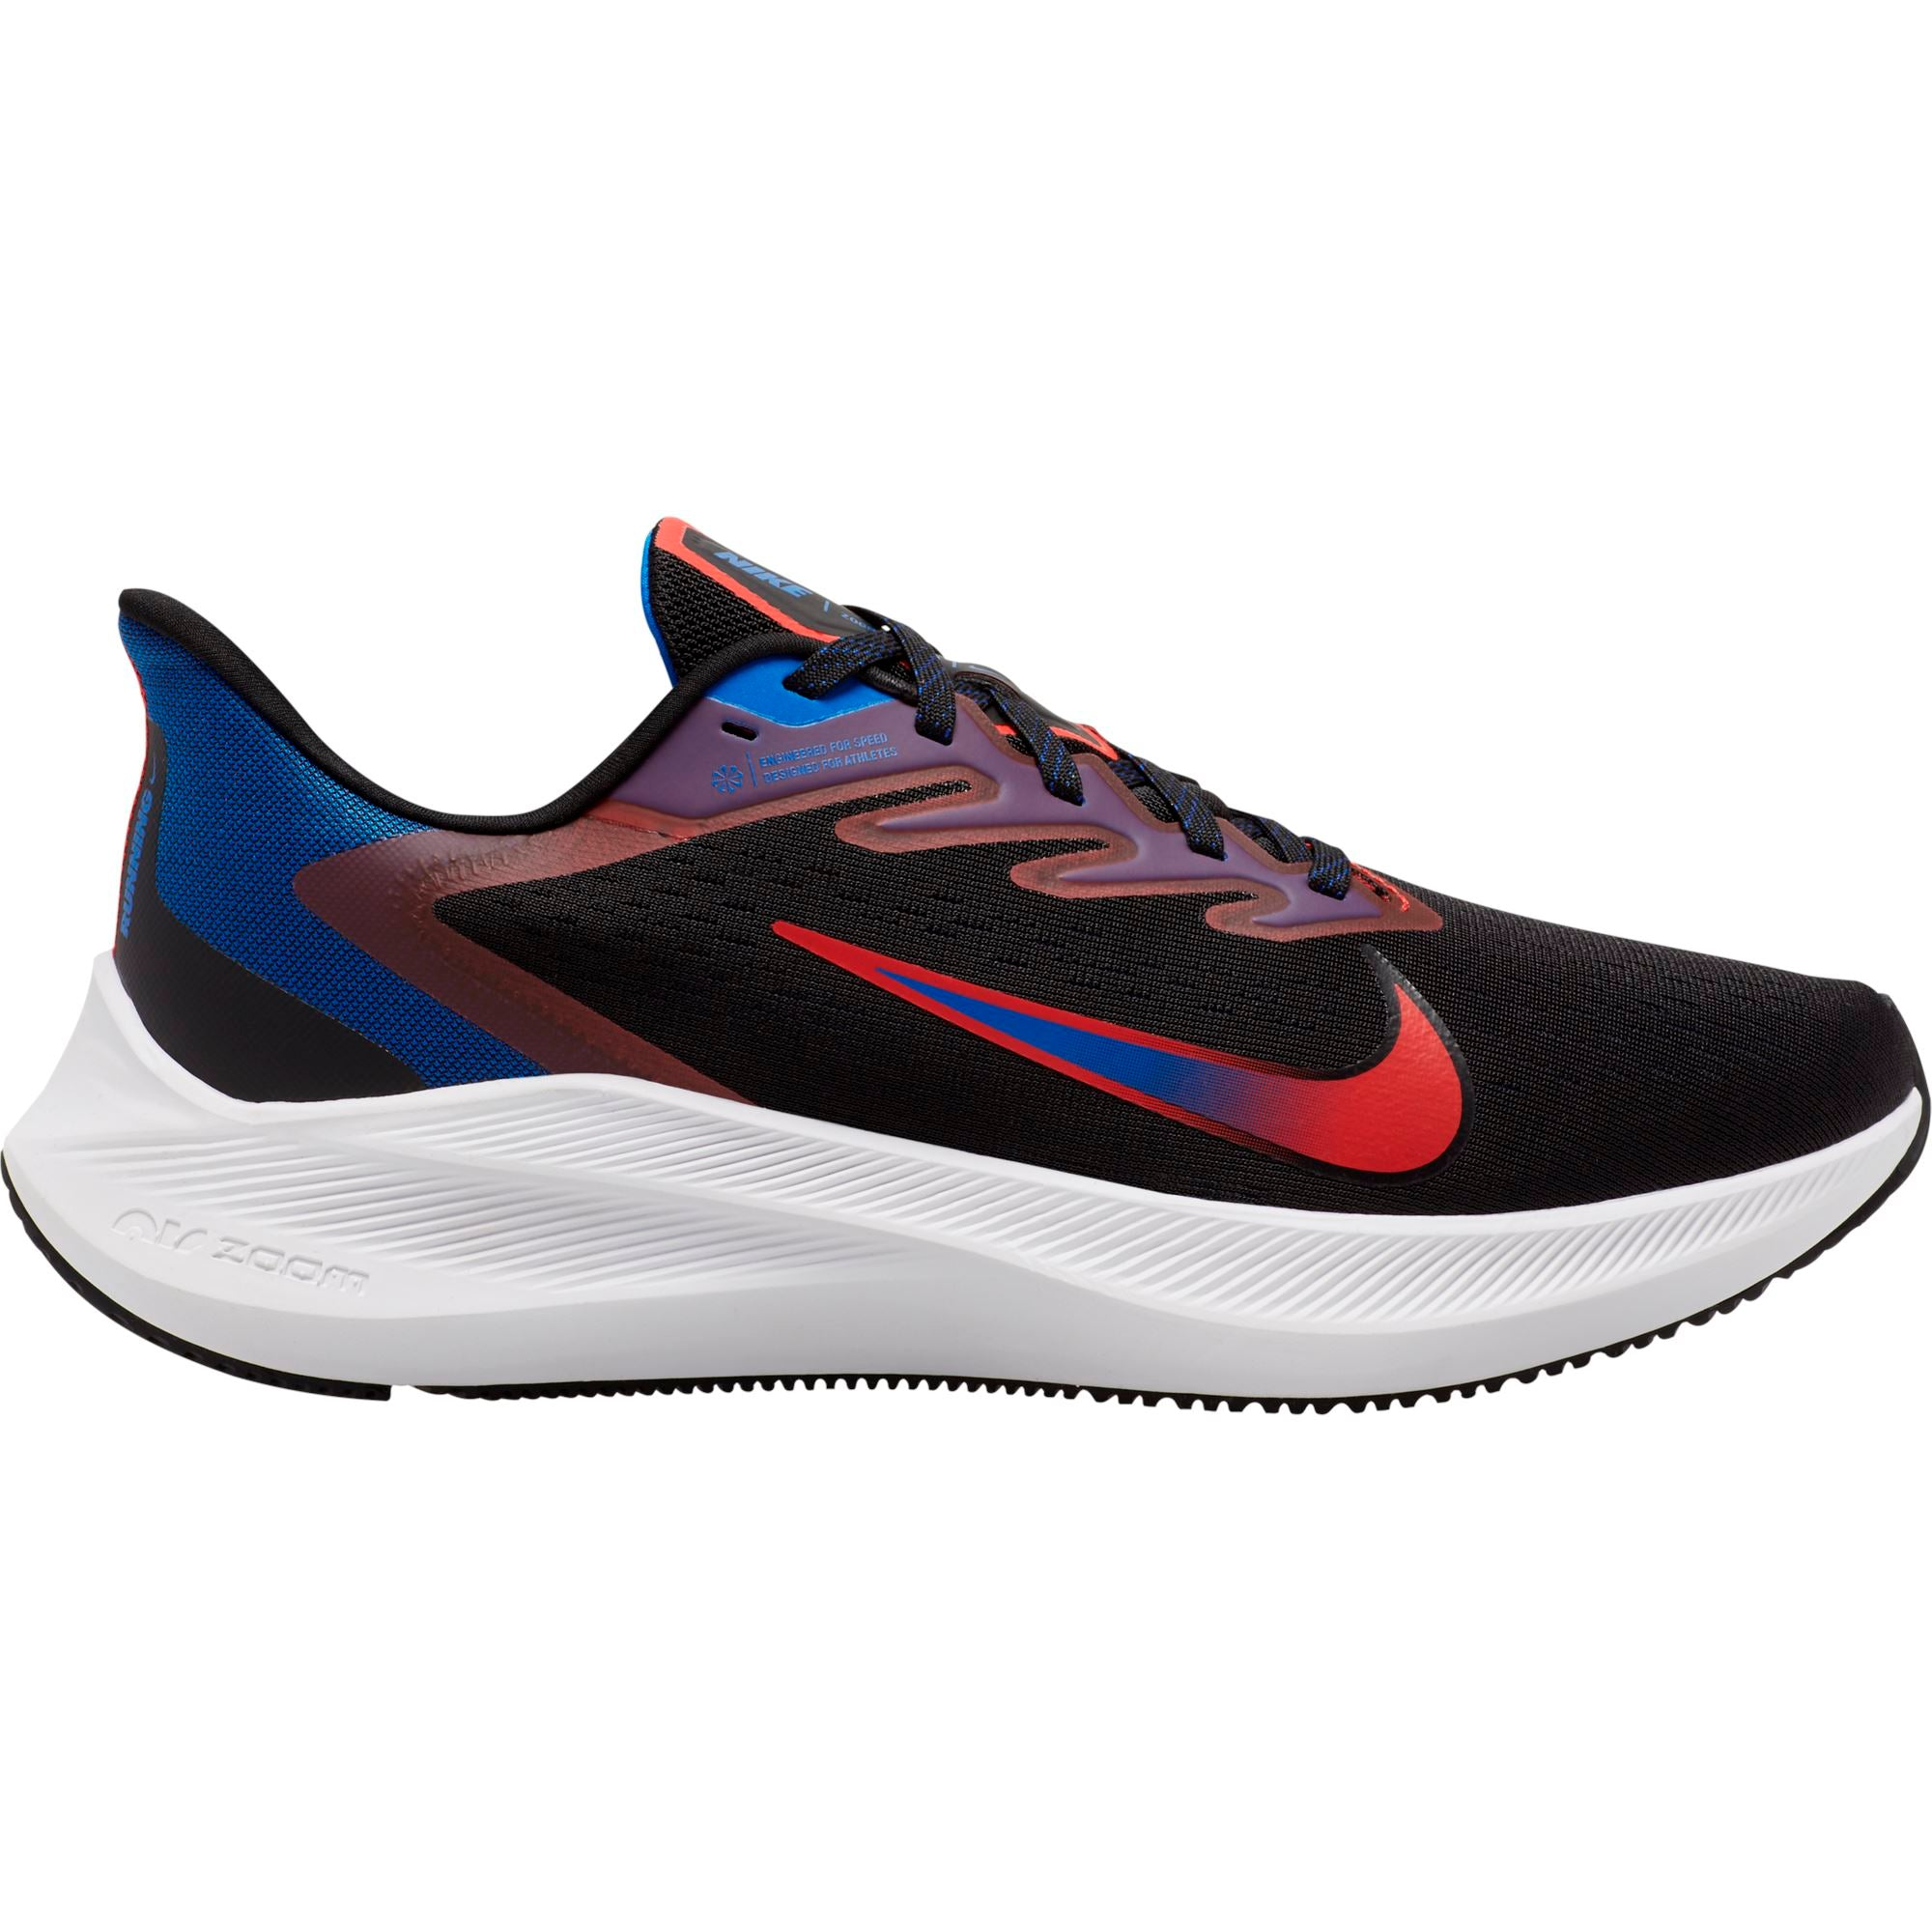 Nike Mens Air Zoom Winflo 7 - Black/Chile Red/Racer Blue SP-Footwear-Mens Nike